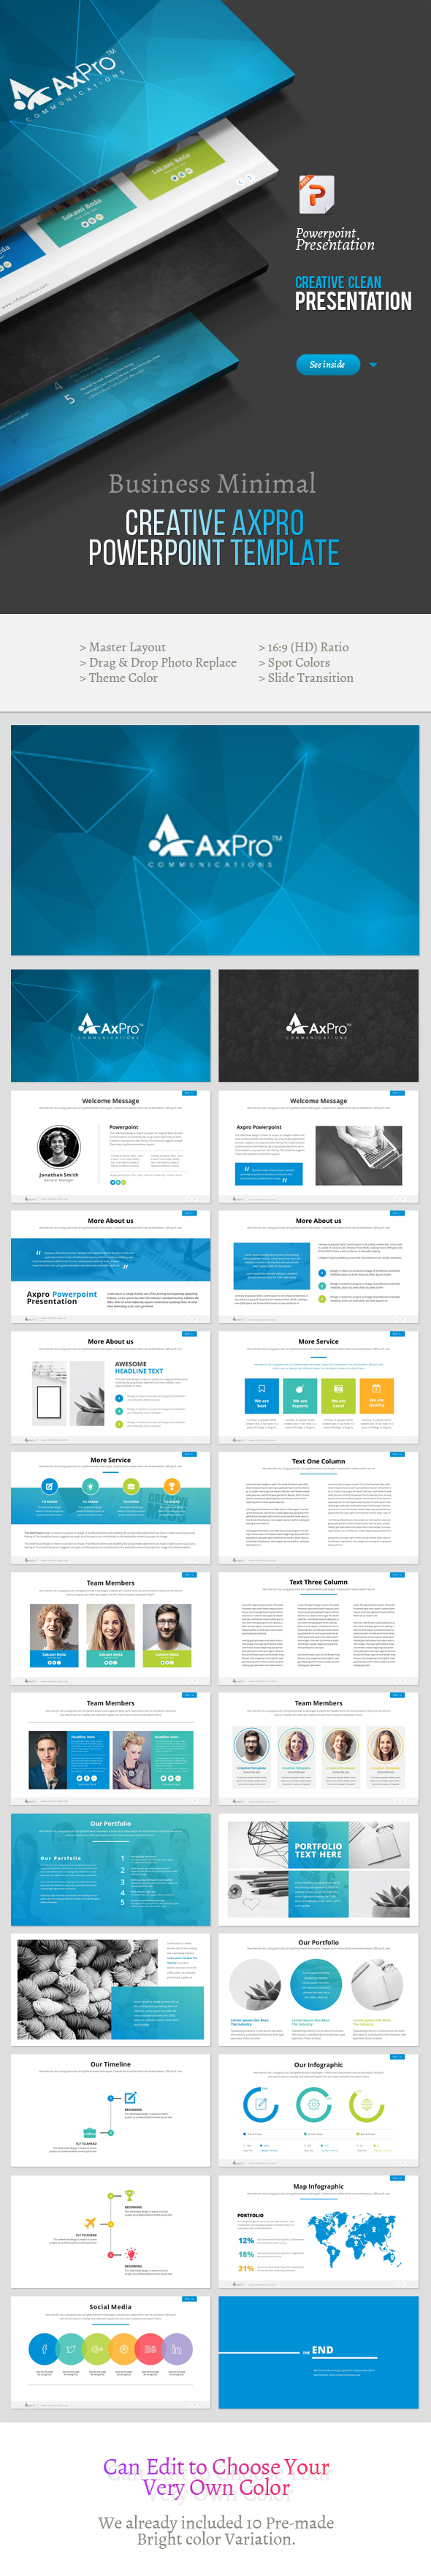 Creative Axpro Powerpoint Template 2 - Creative PowerPoint Templates